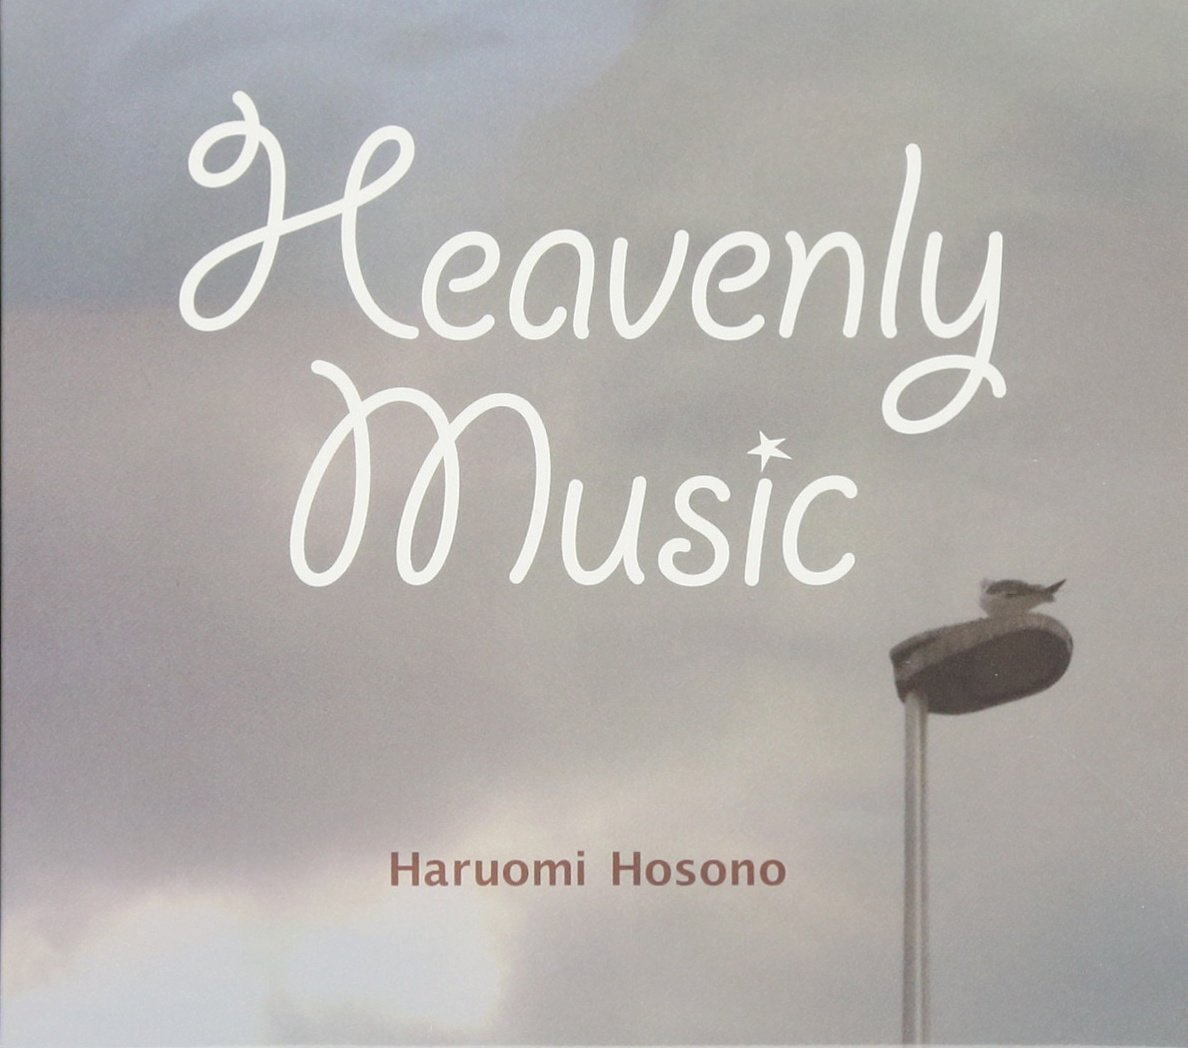 『Heavenly Music』('13)/細野晴臣